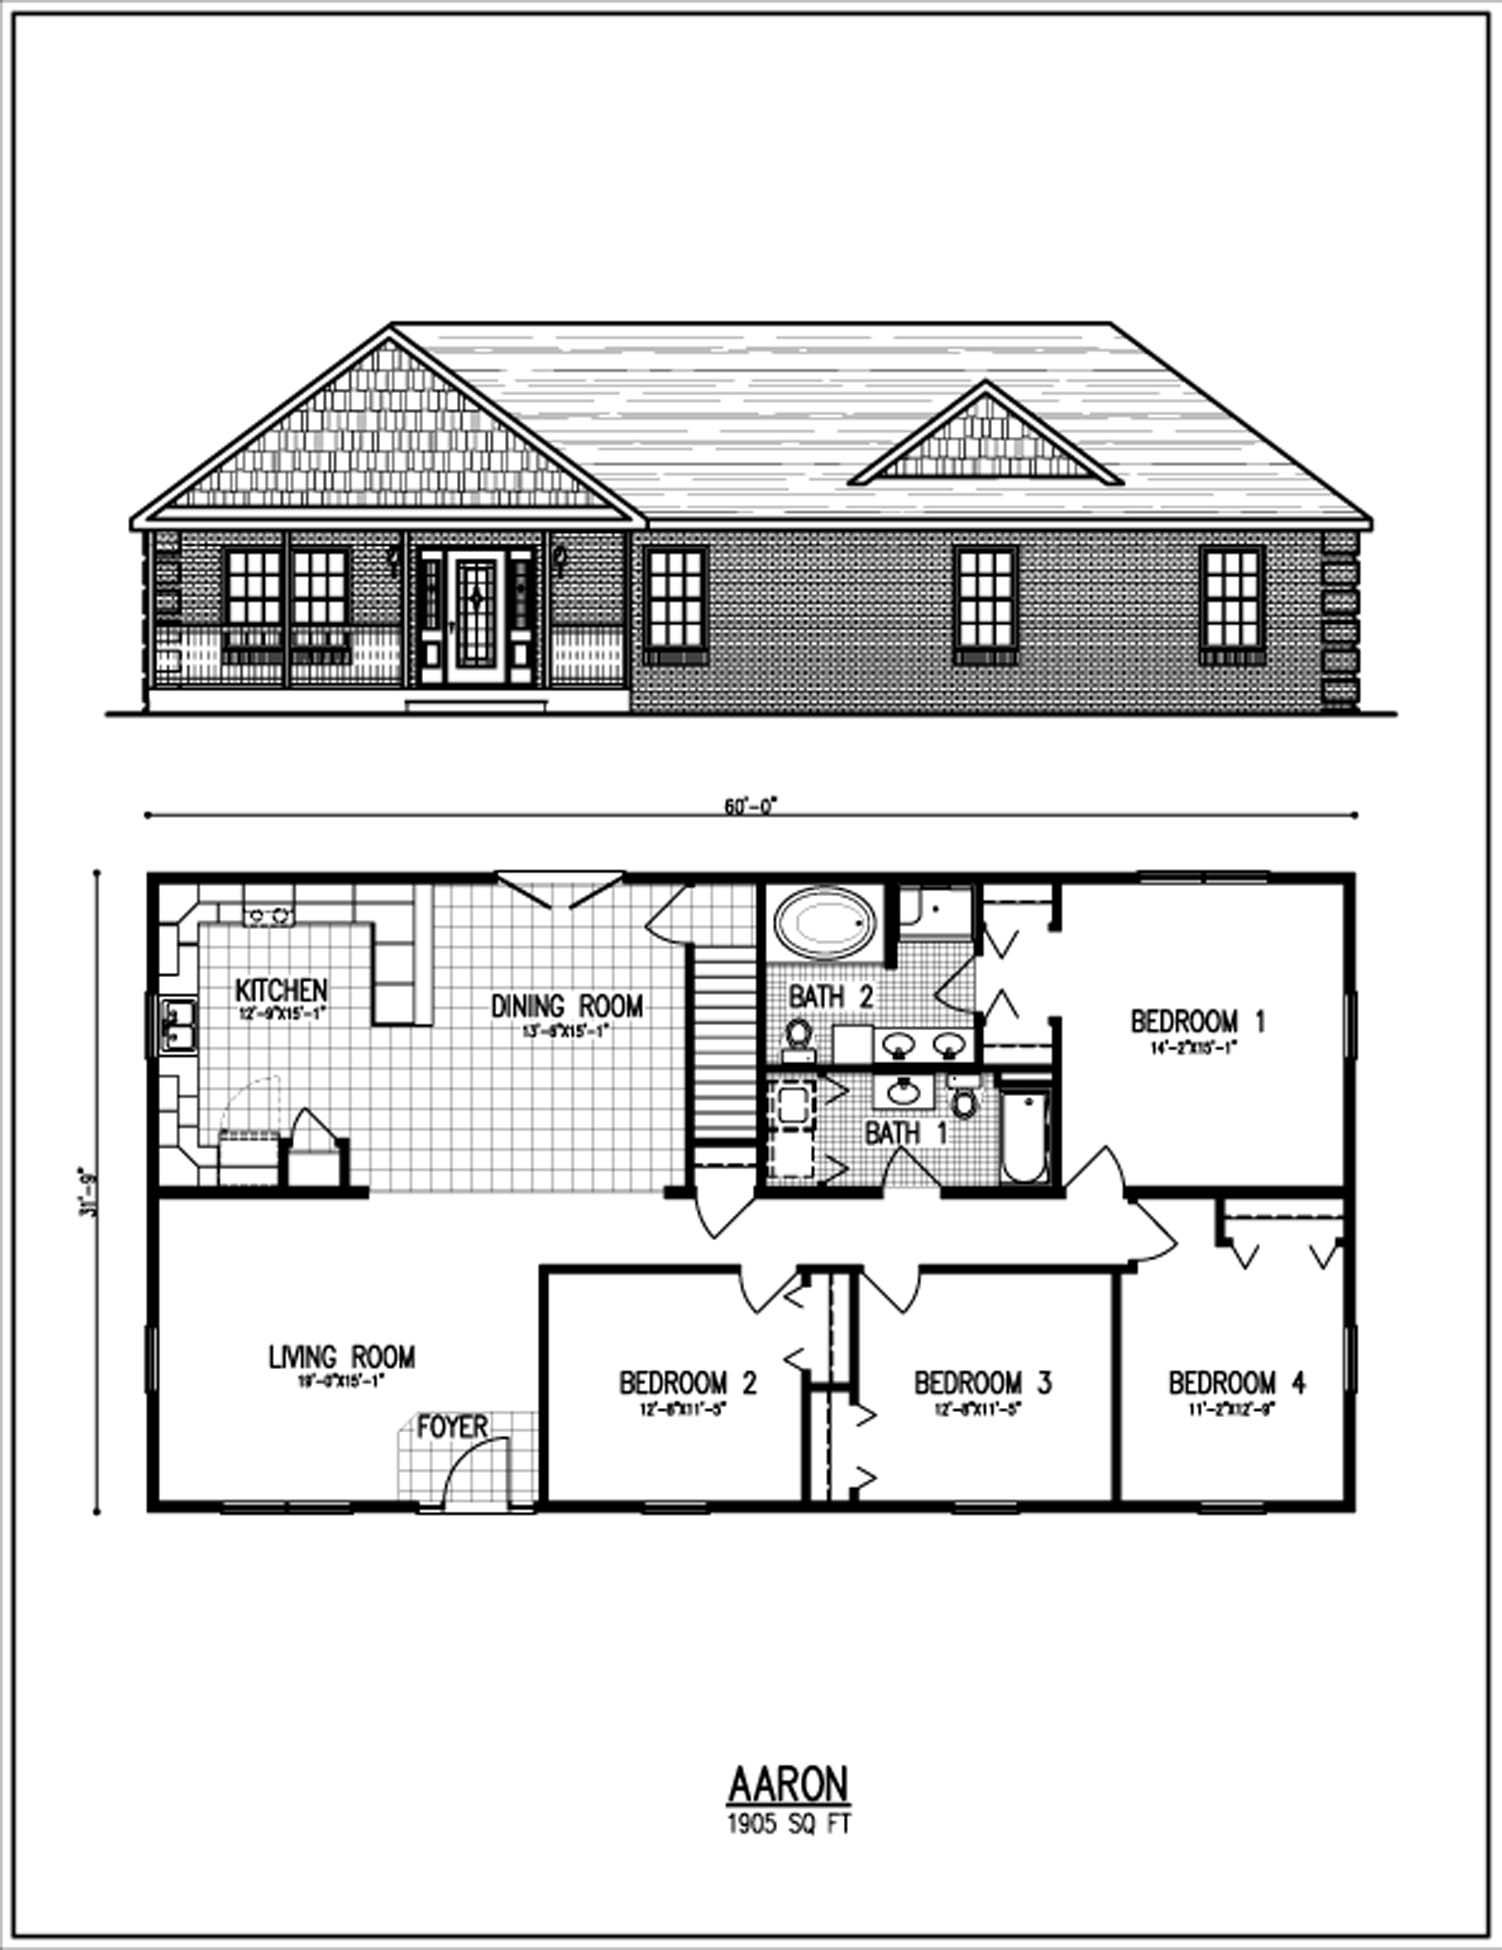 Thompson Hill Homes Inc Floor Plans Ranch Ranch Style Floor Plans Ranch House Floor Plans Floor Plans Ranch